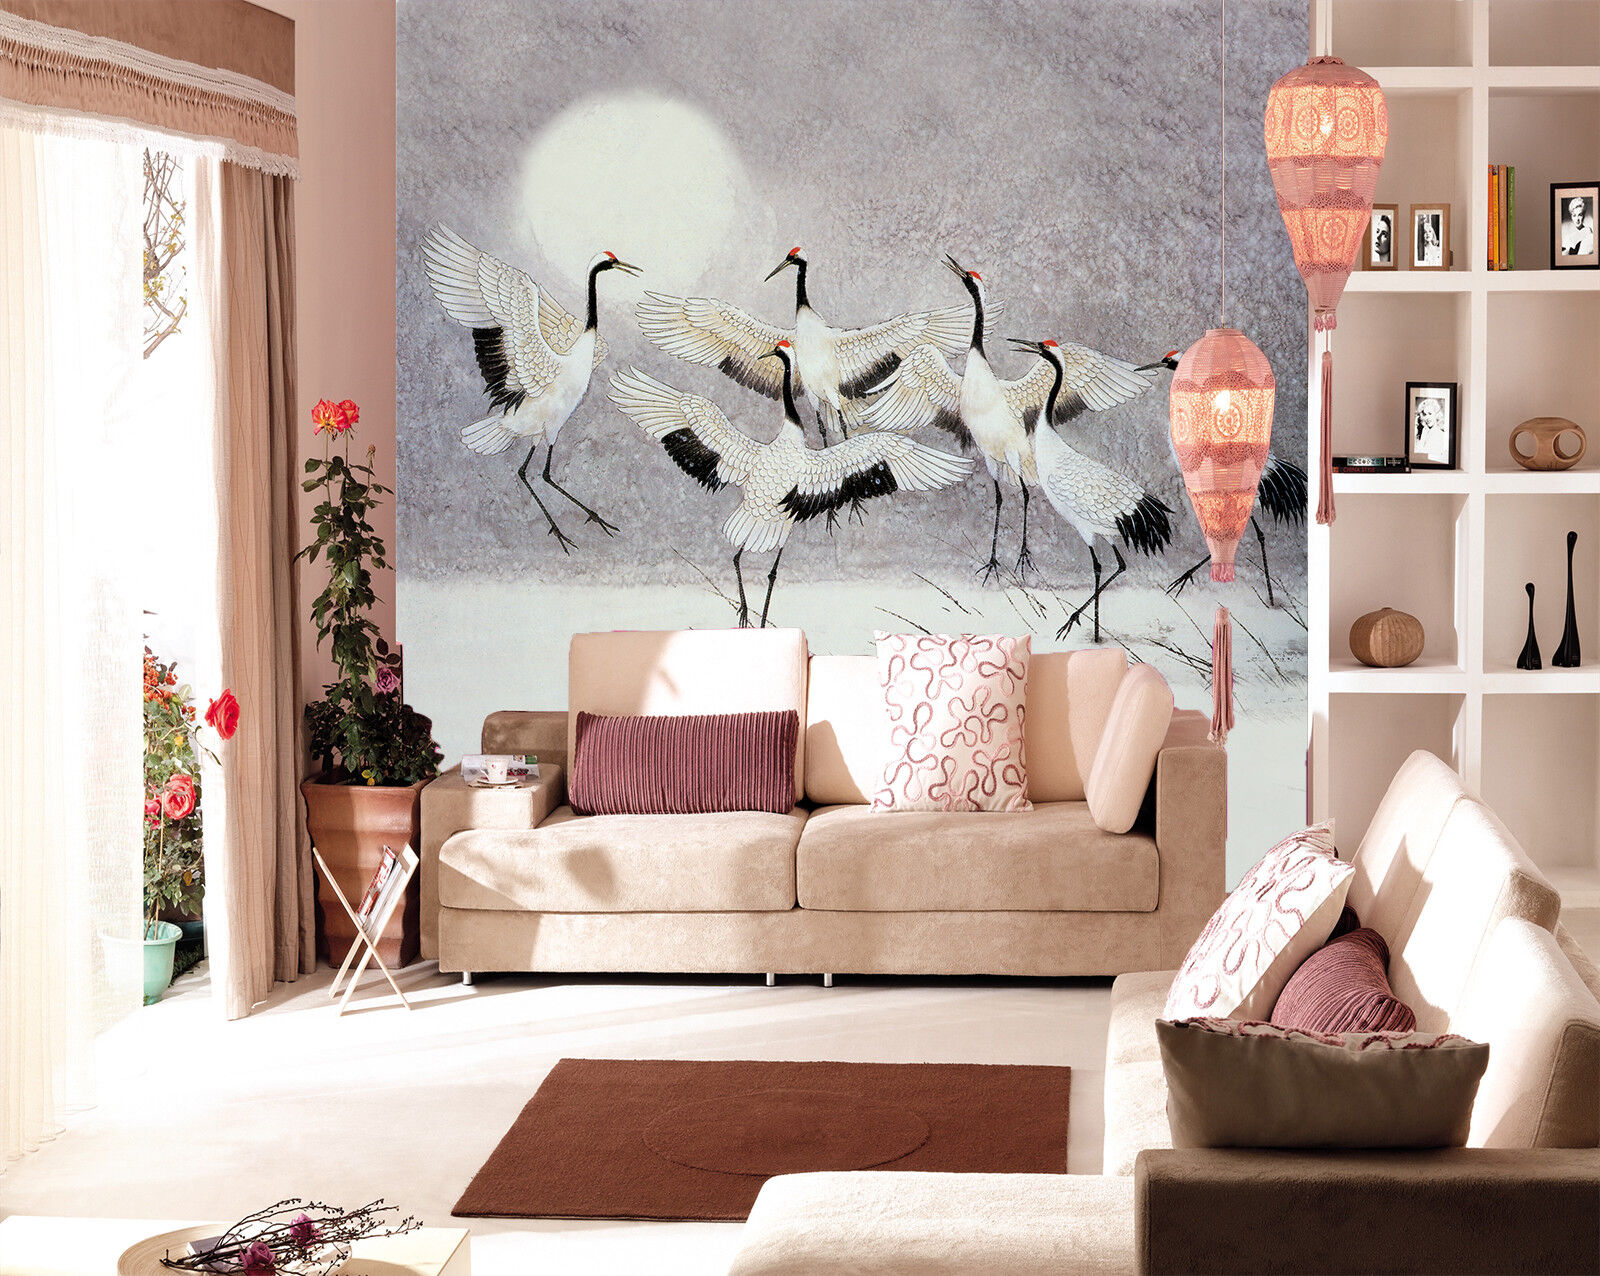 3D Moon Crane 87 Wallpaper Mural Paper Wall Print Wallpaper Murals UK Lemon